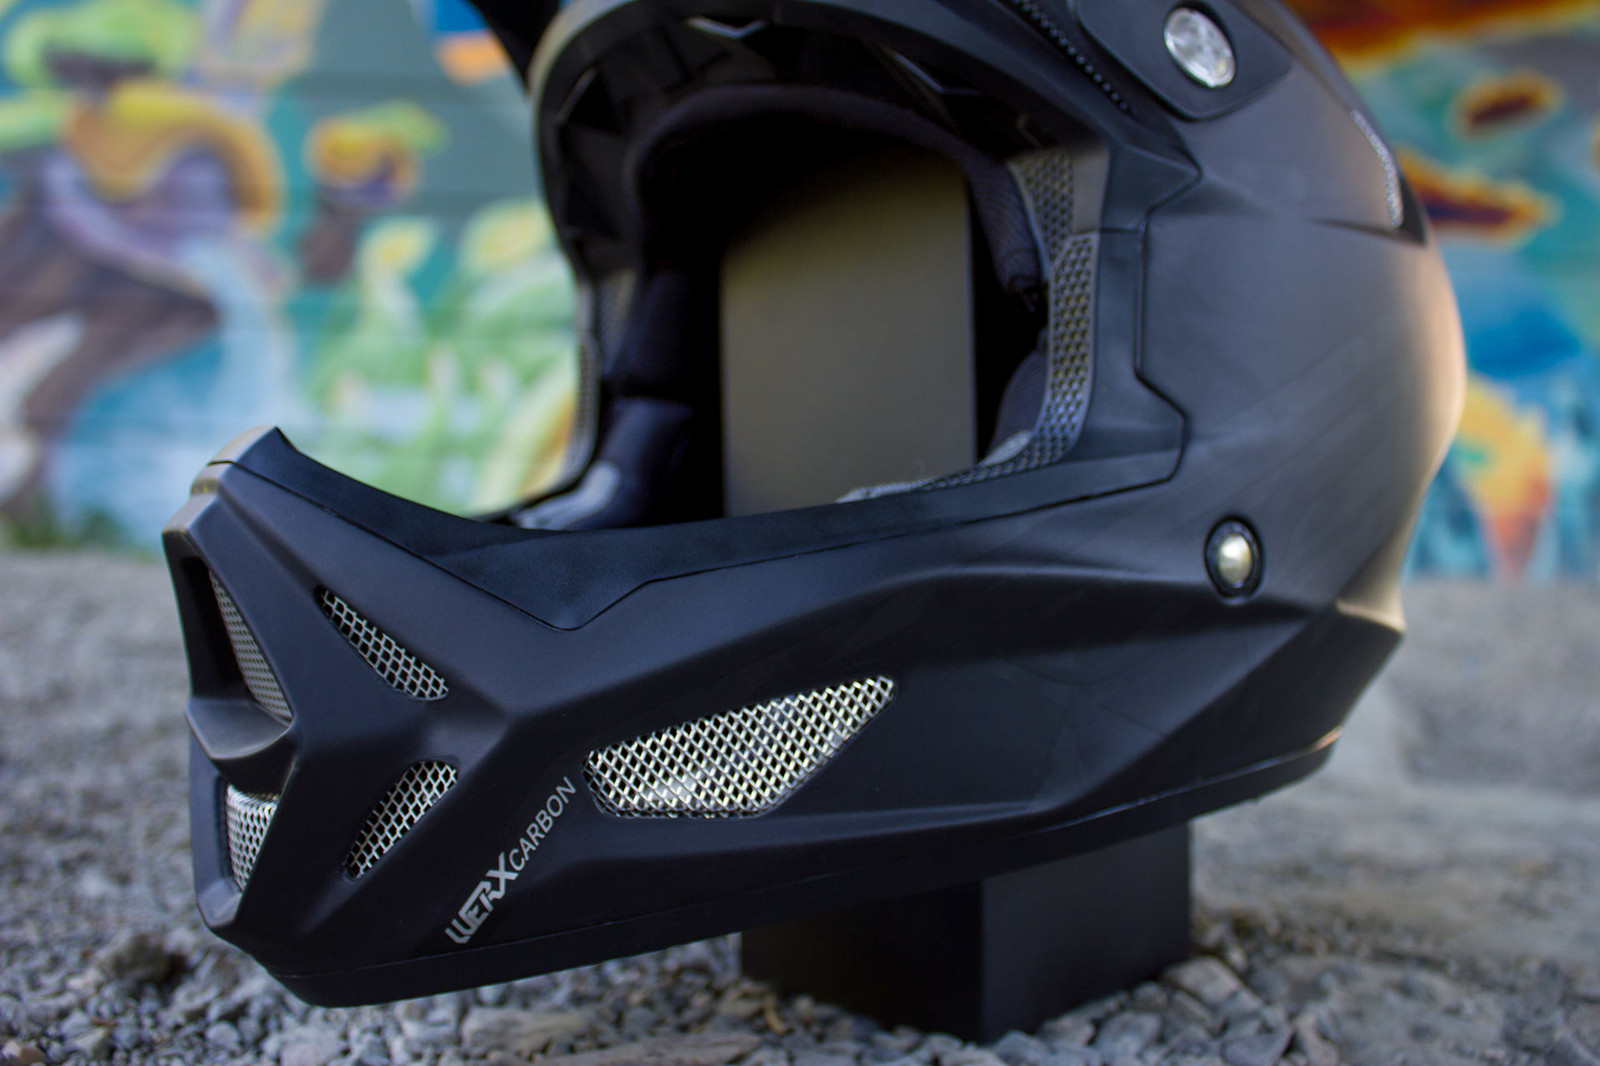 Fly Racing Werx Carbon Helmet - Bonus Gallery - First Look: Fly Racing Werx Carbon Helmet - Bonus Gallery - Mountain Biking Pictures - Vital MTB